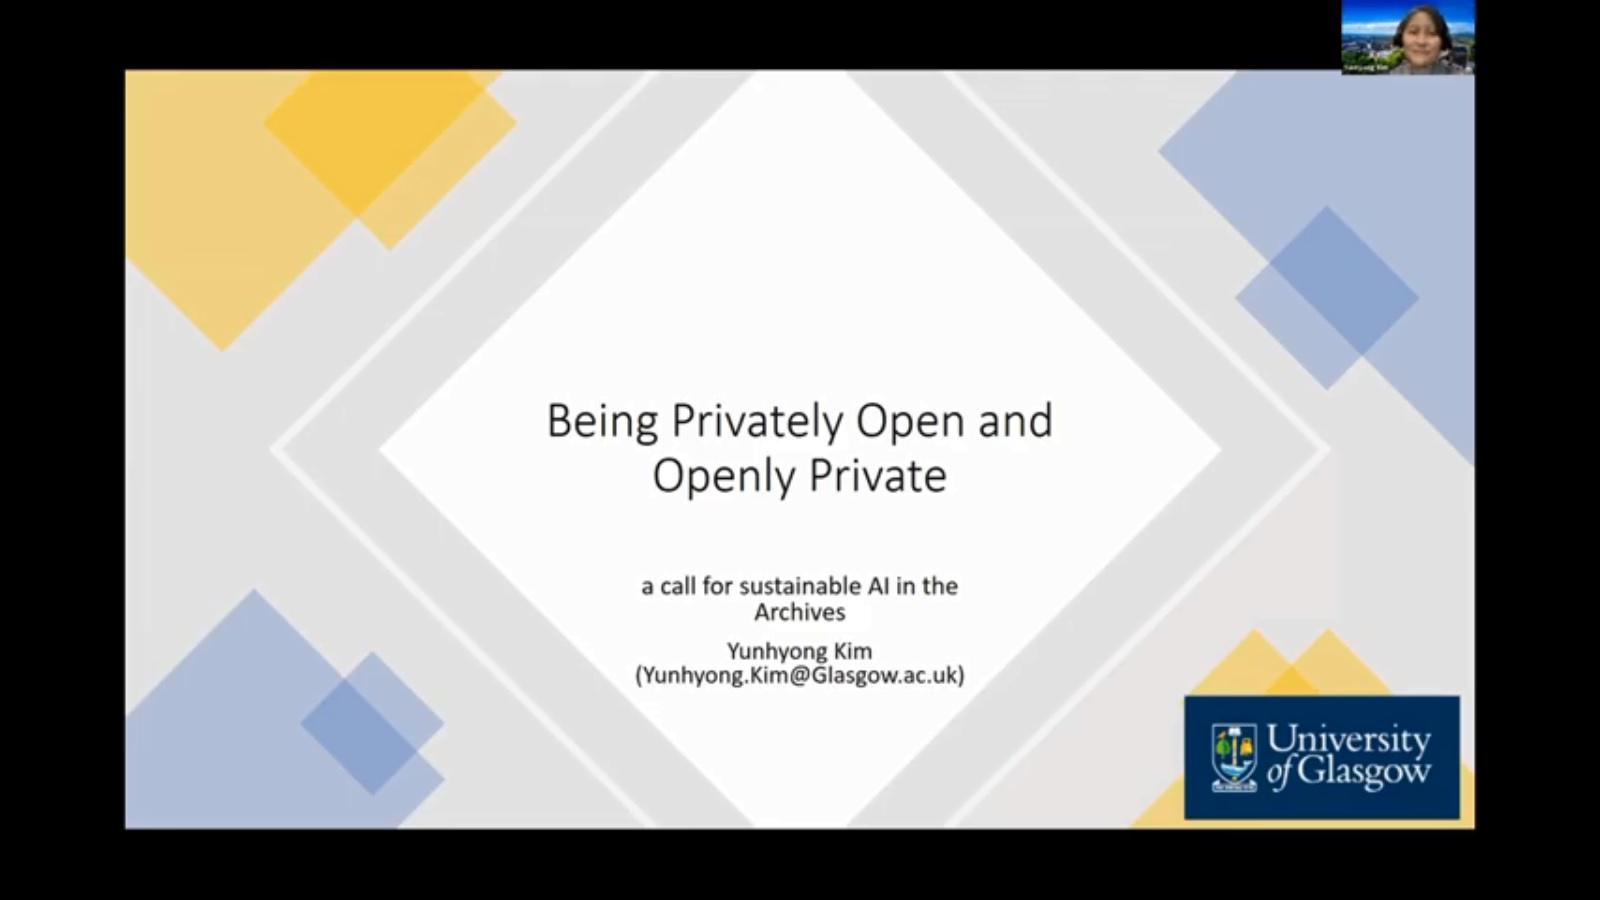 Workshop 1 – Yunhyong Kim – Being Privately Open and Openly Private